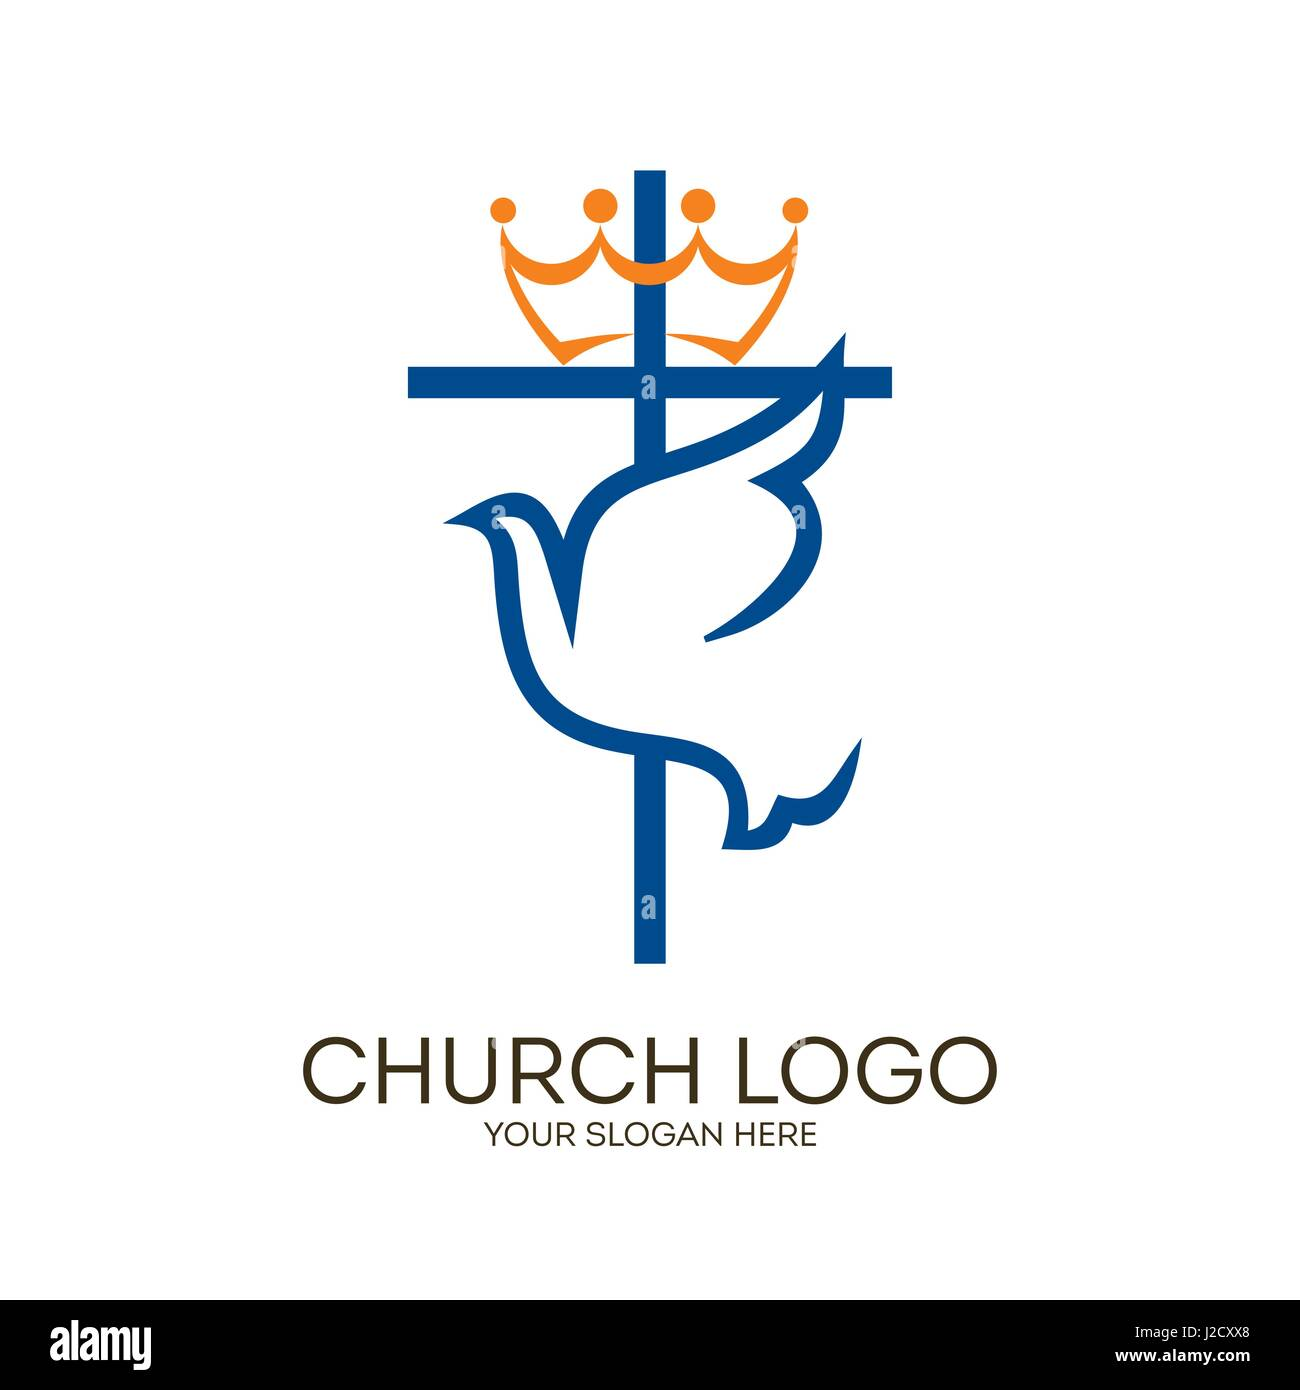 Church logo christian symbols cross and dove holy spirit stock christian symbols cross and dove holy spirit biocorpaavc